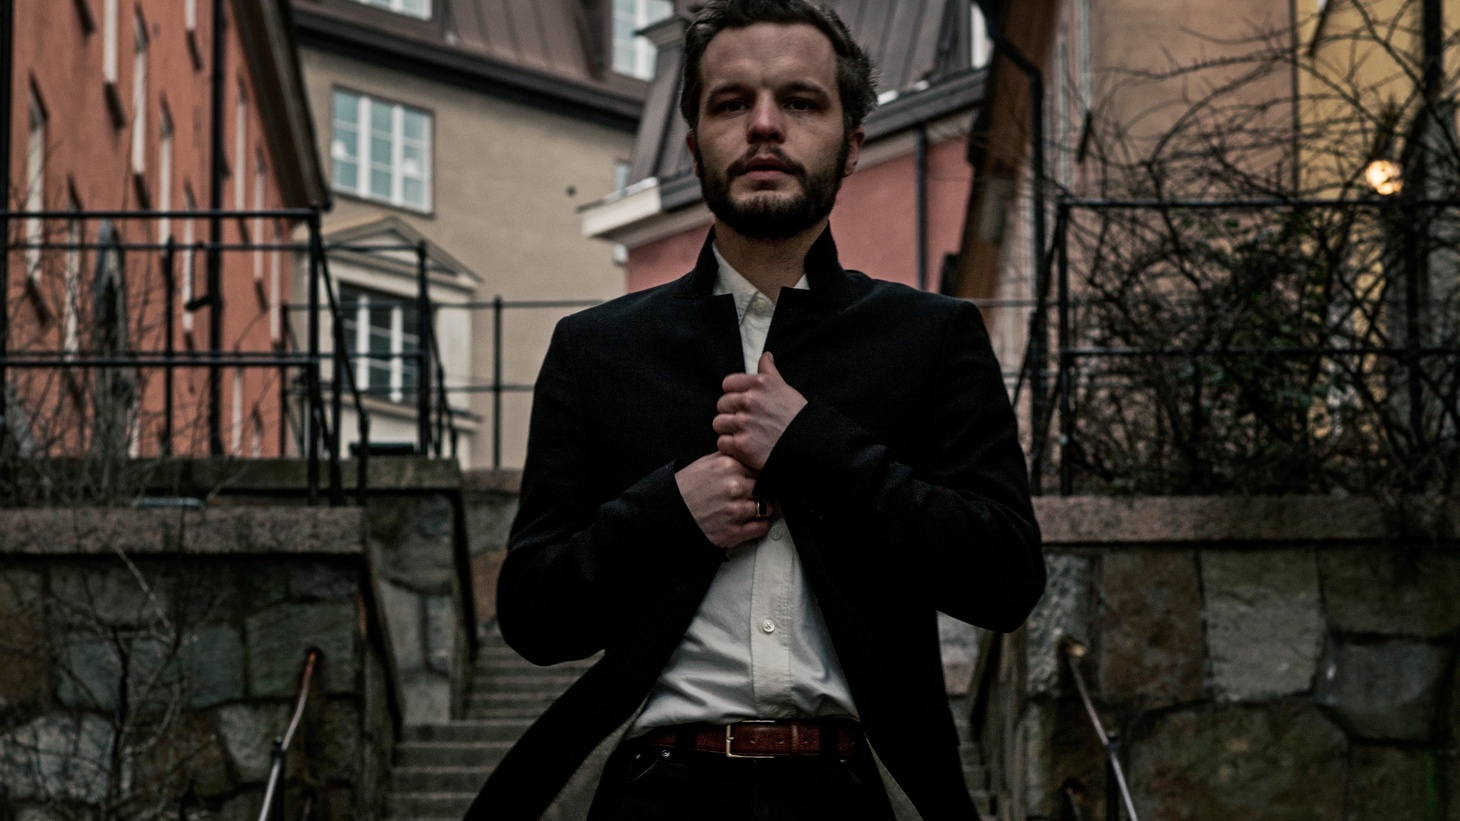 The Tallest Man on Earth is a project from Swedish singer Kristian Matsson.